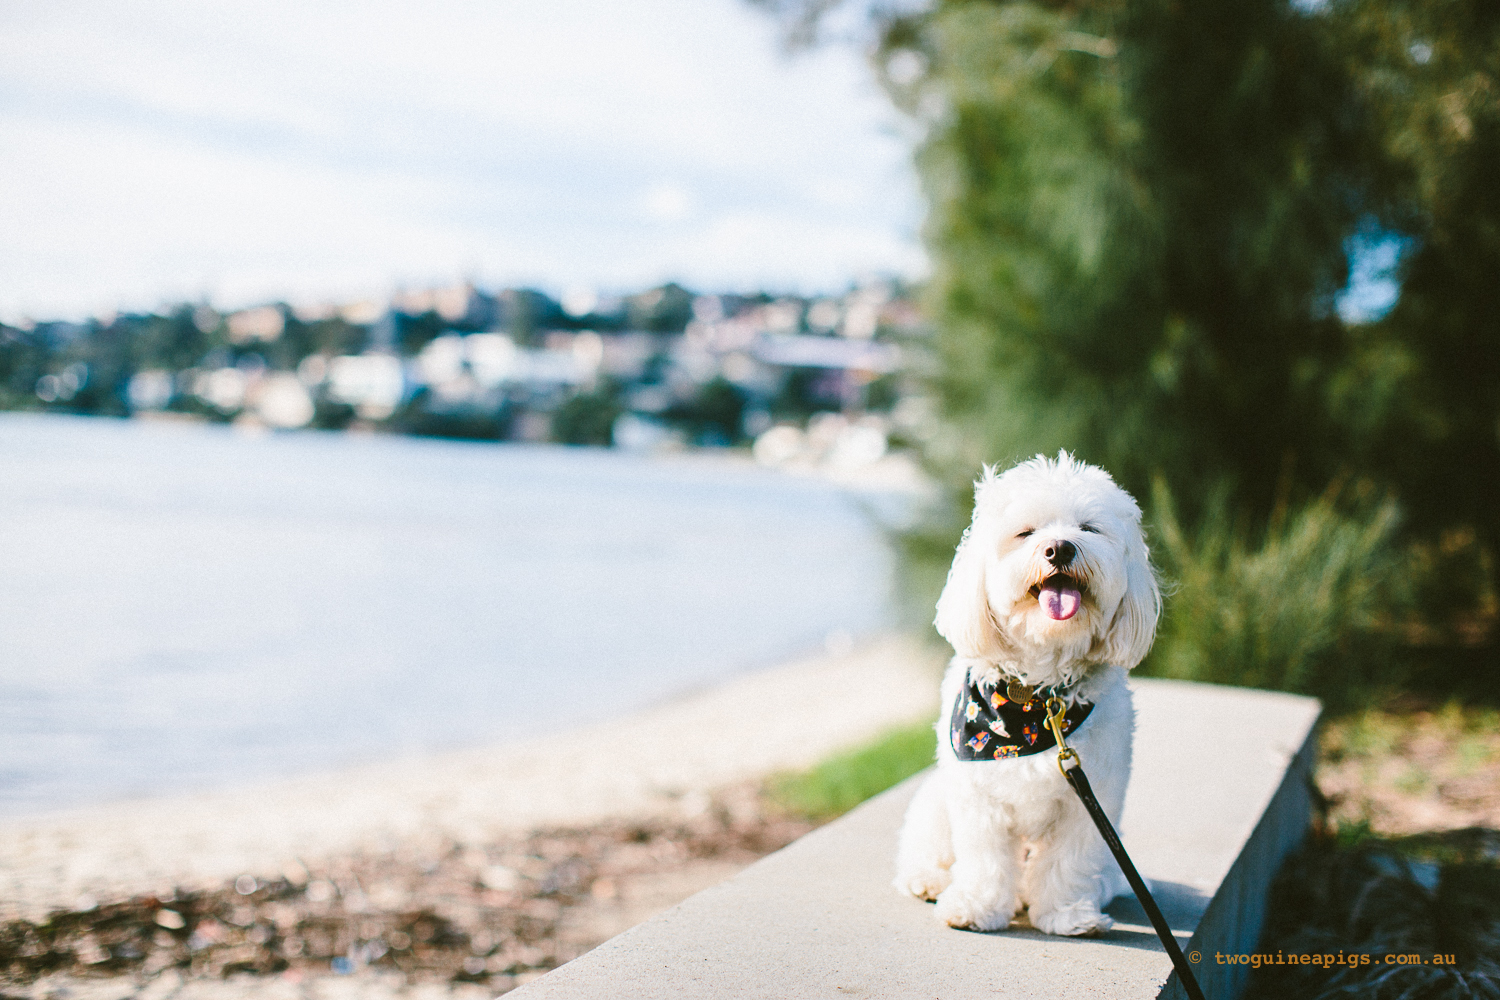 twoguineapigs_pet_photography_dalston_havanese_holiday_day5_dog